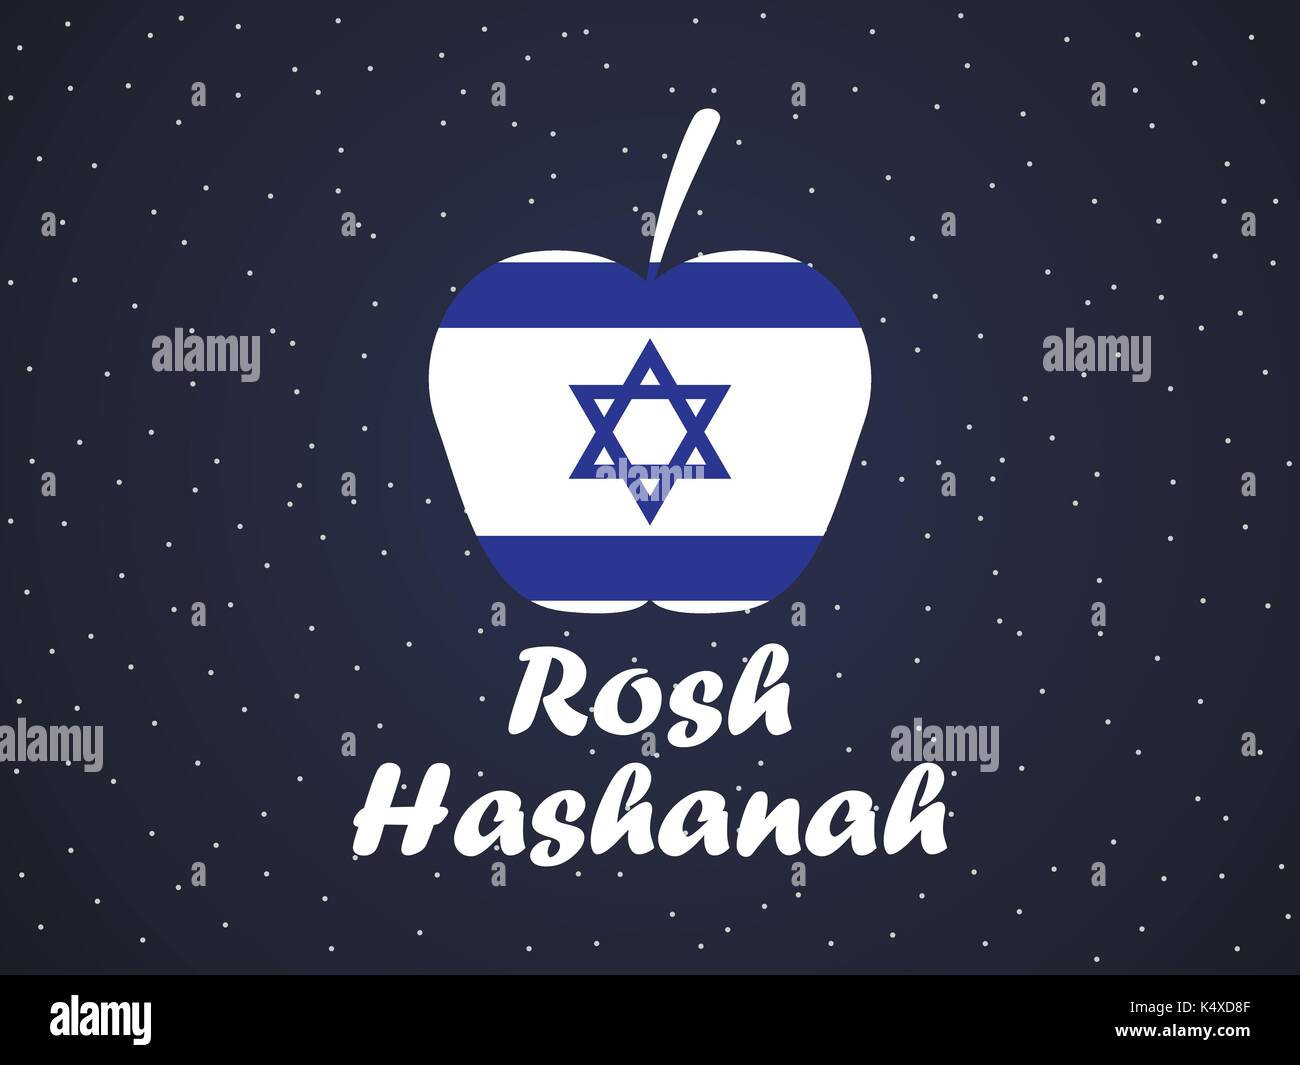 Rosh Hashanah Stock Vector Images Alamy